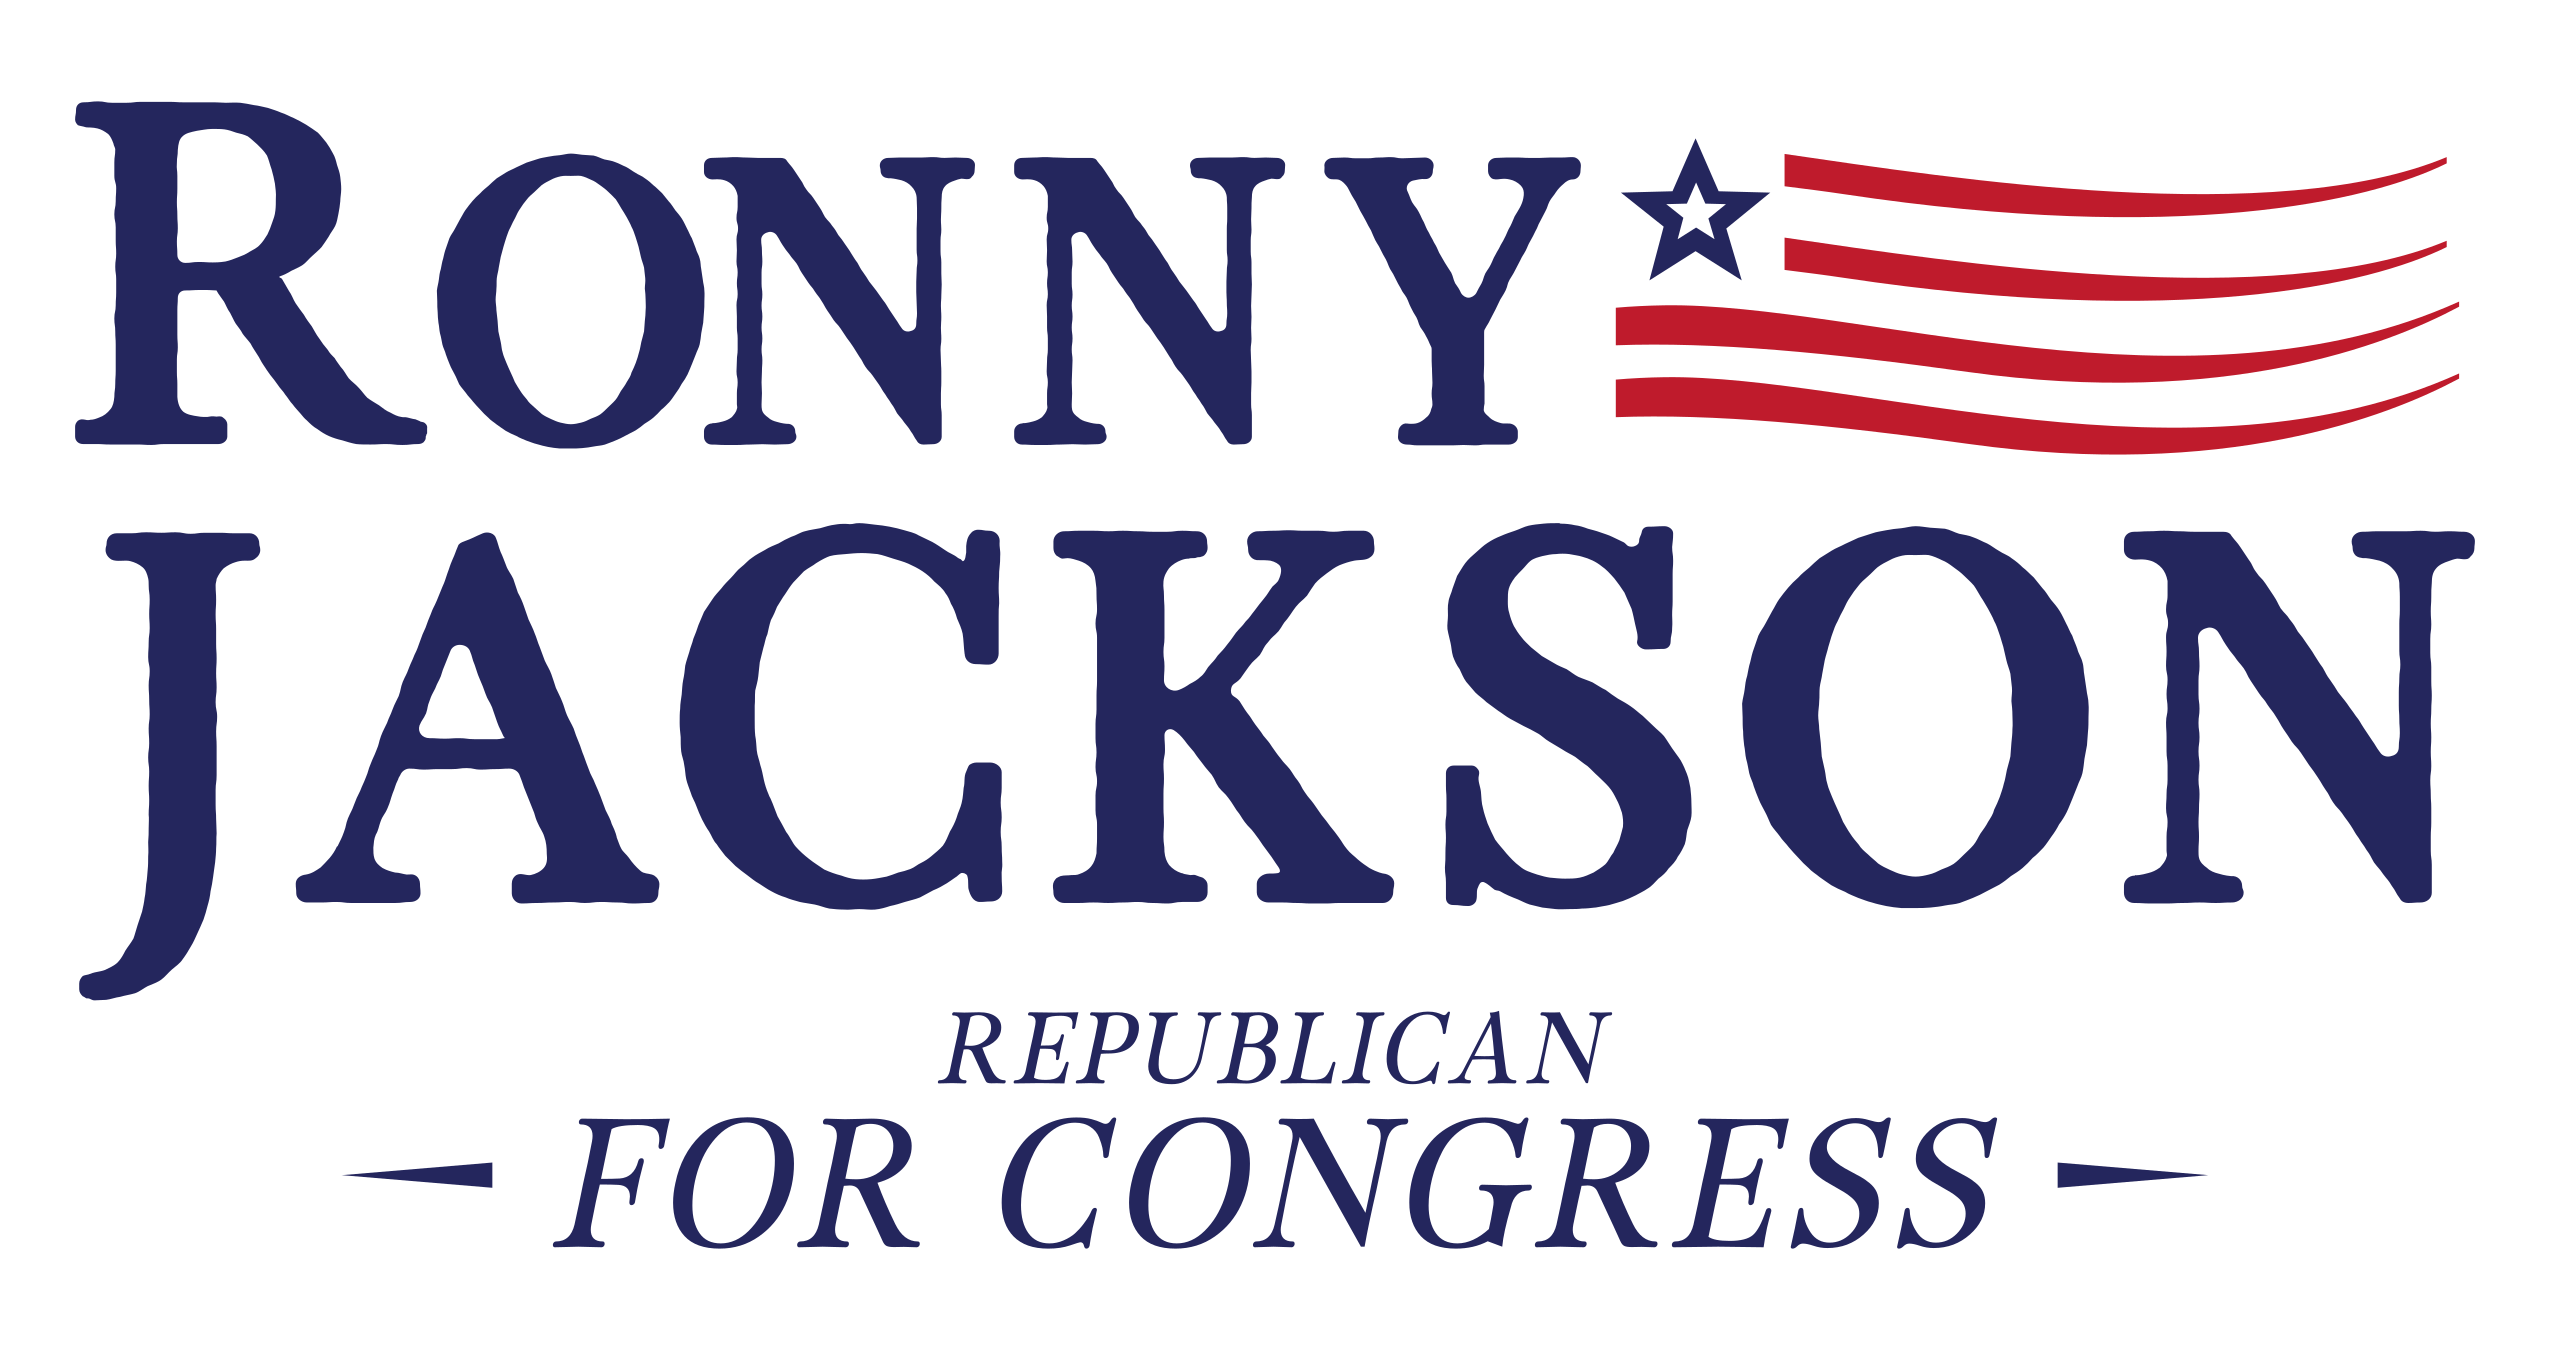 Ronny Jacoson for Congress